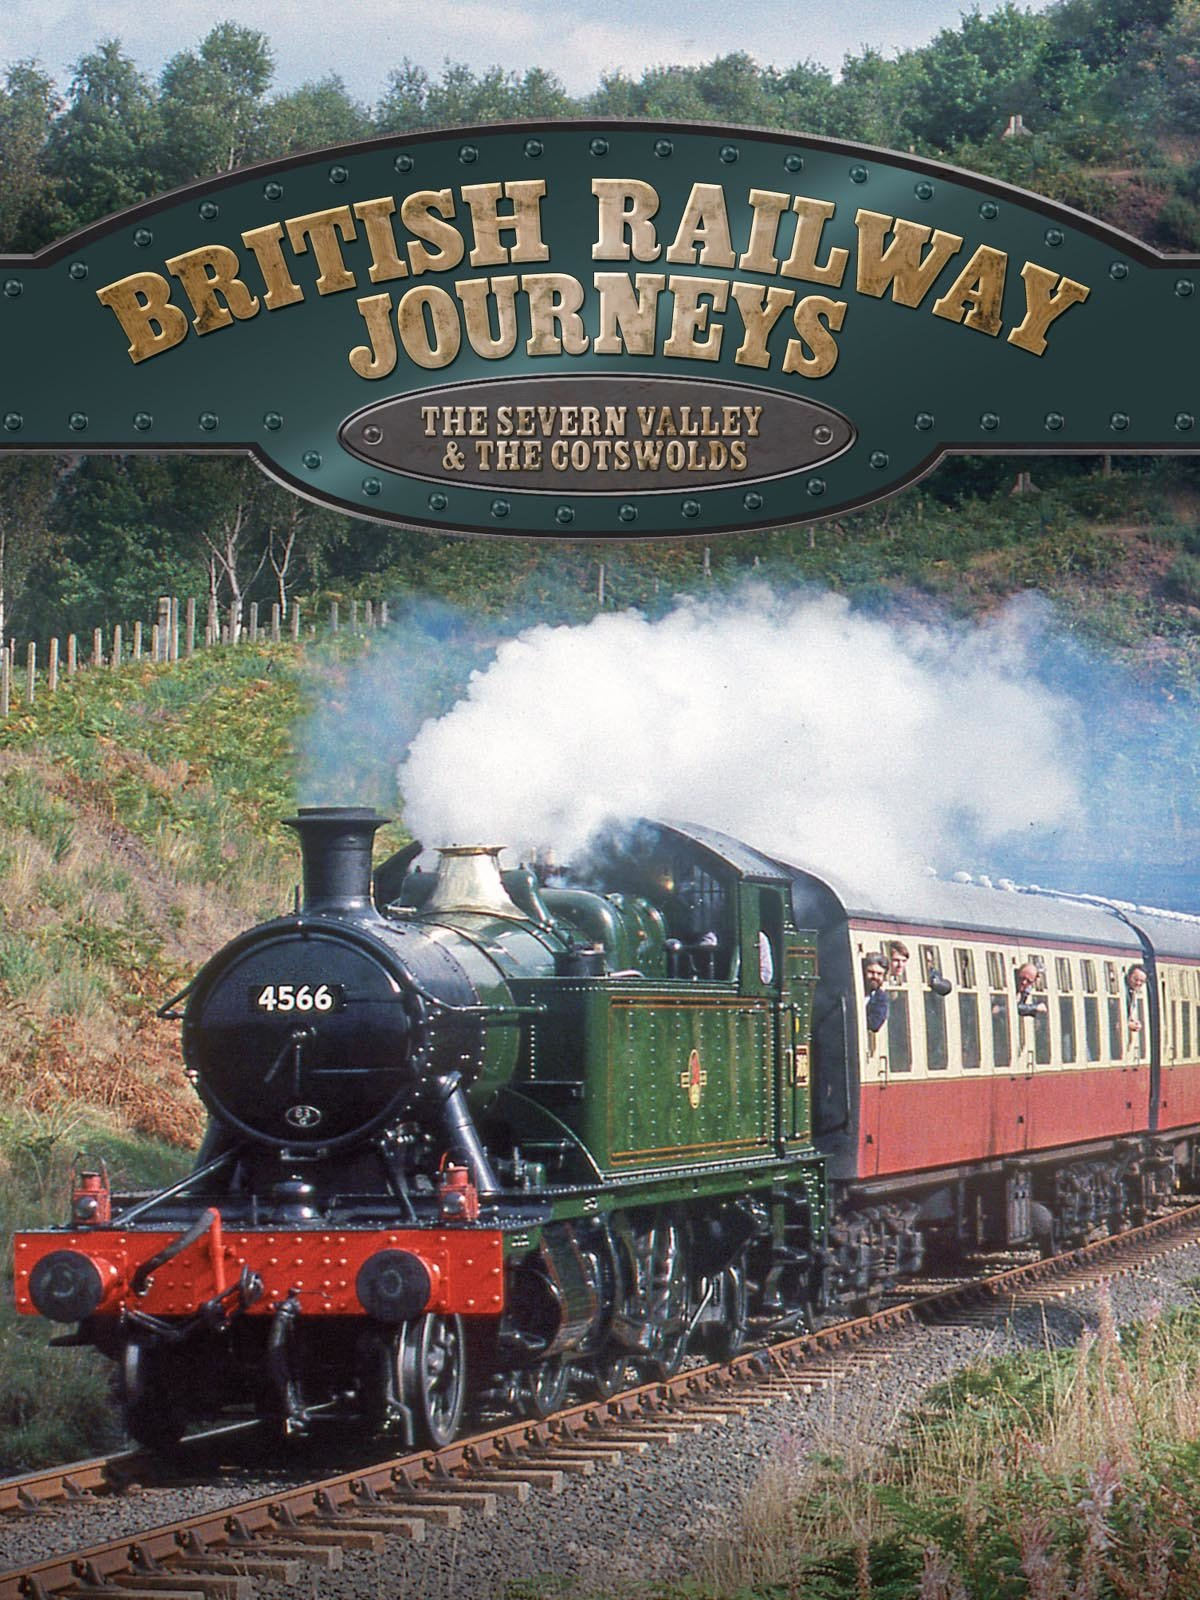 British Railway Journeys: The Severn Valley & The Cotswolds